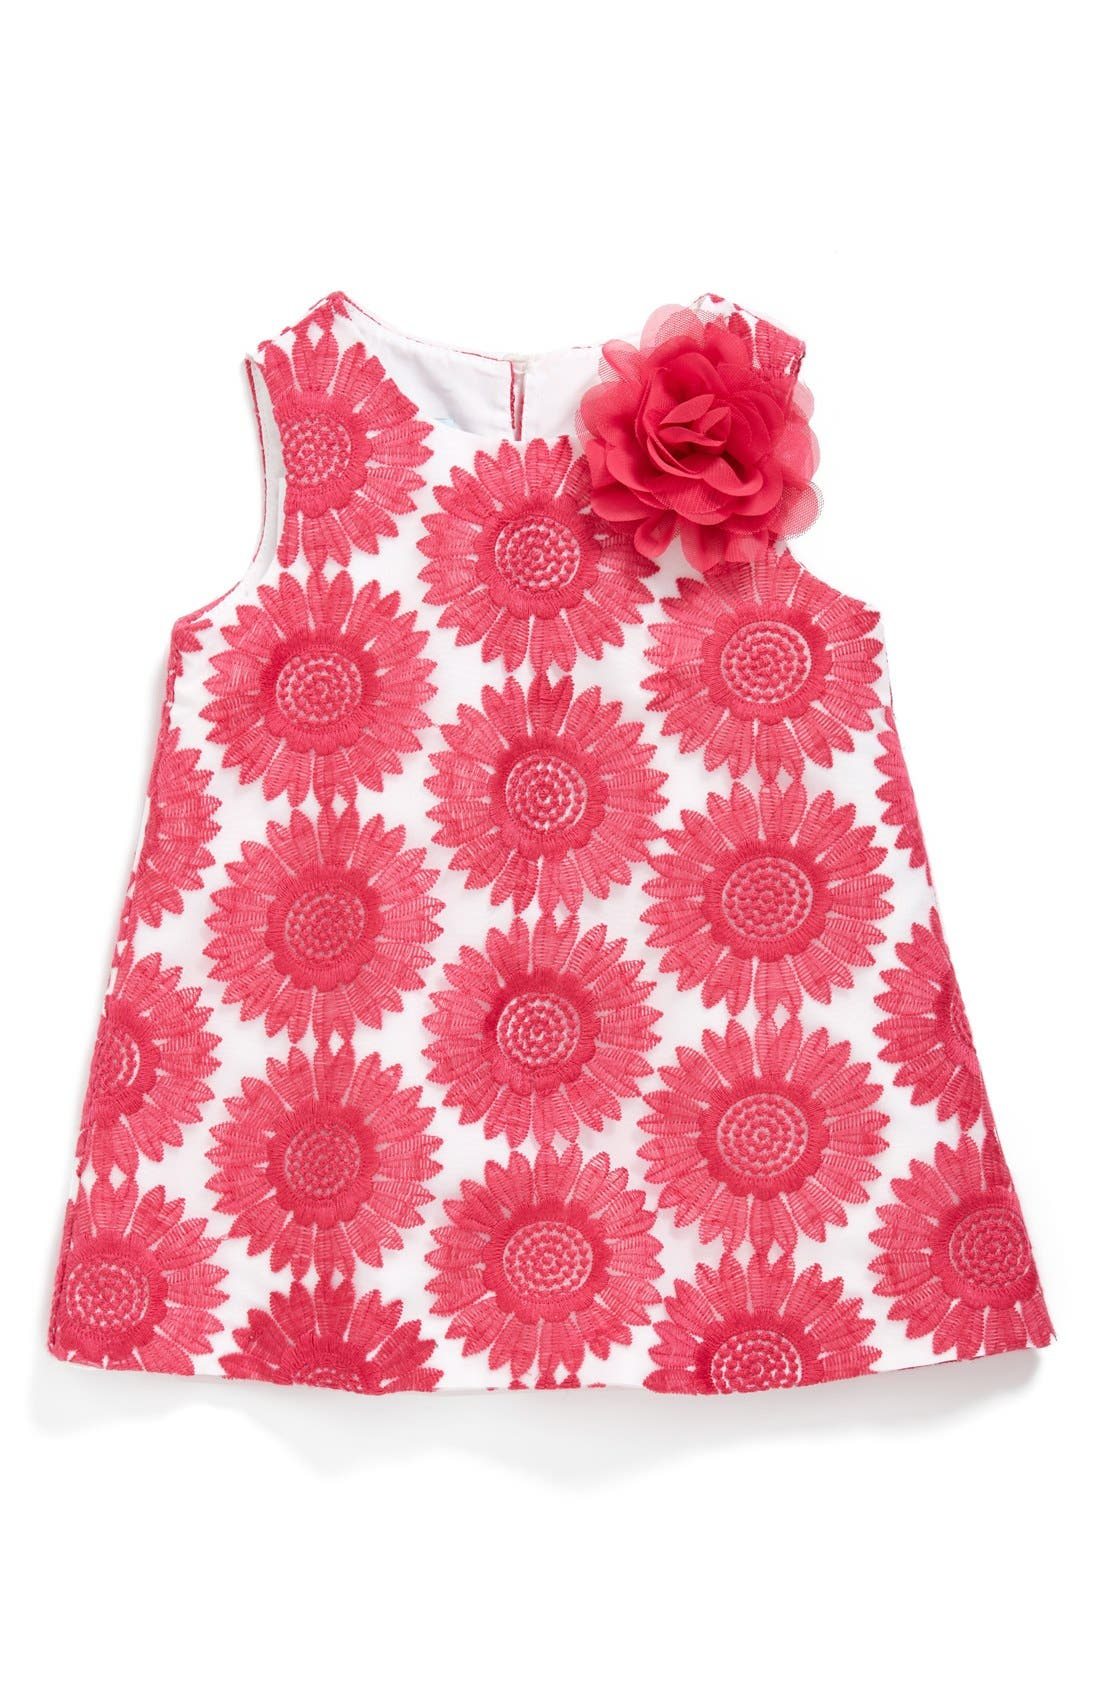 Main Image - Pippa & Julie Floral Embroidered Sleeveless Dress (Baby Girls)